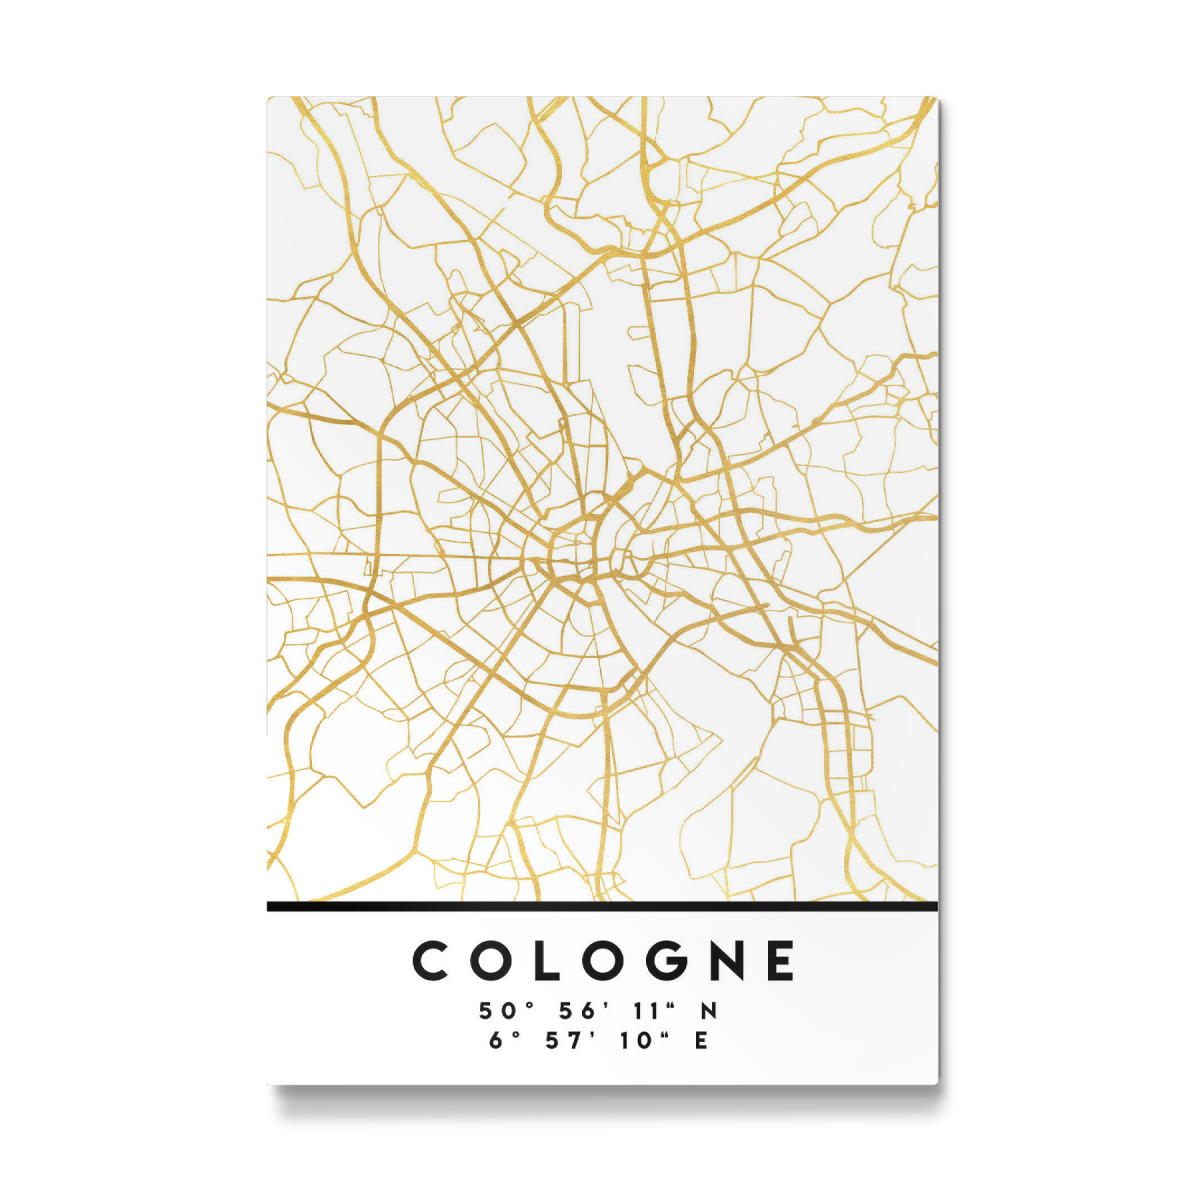 COLOGNE GERMANY STREET MAP ART als Galerie-Print bei artboxONE kaufen